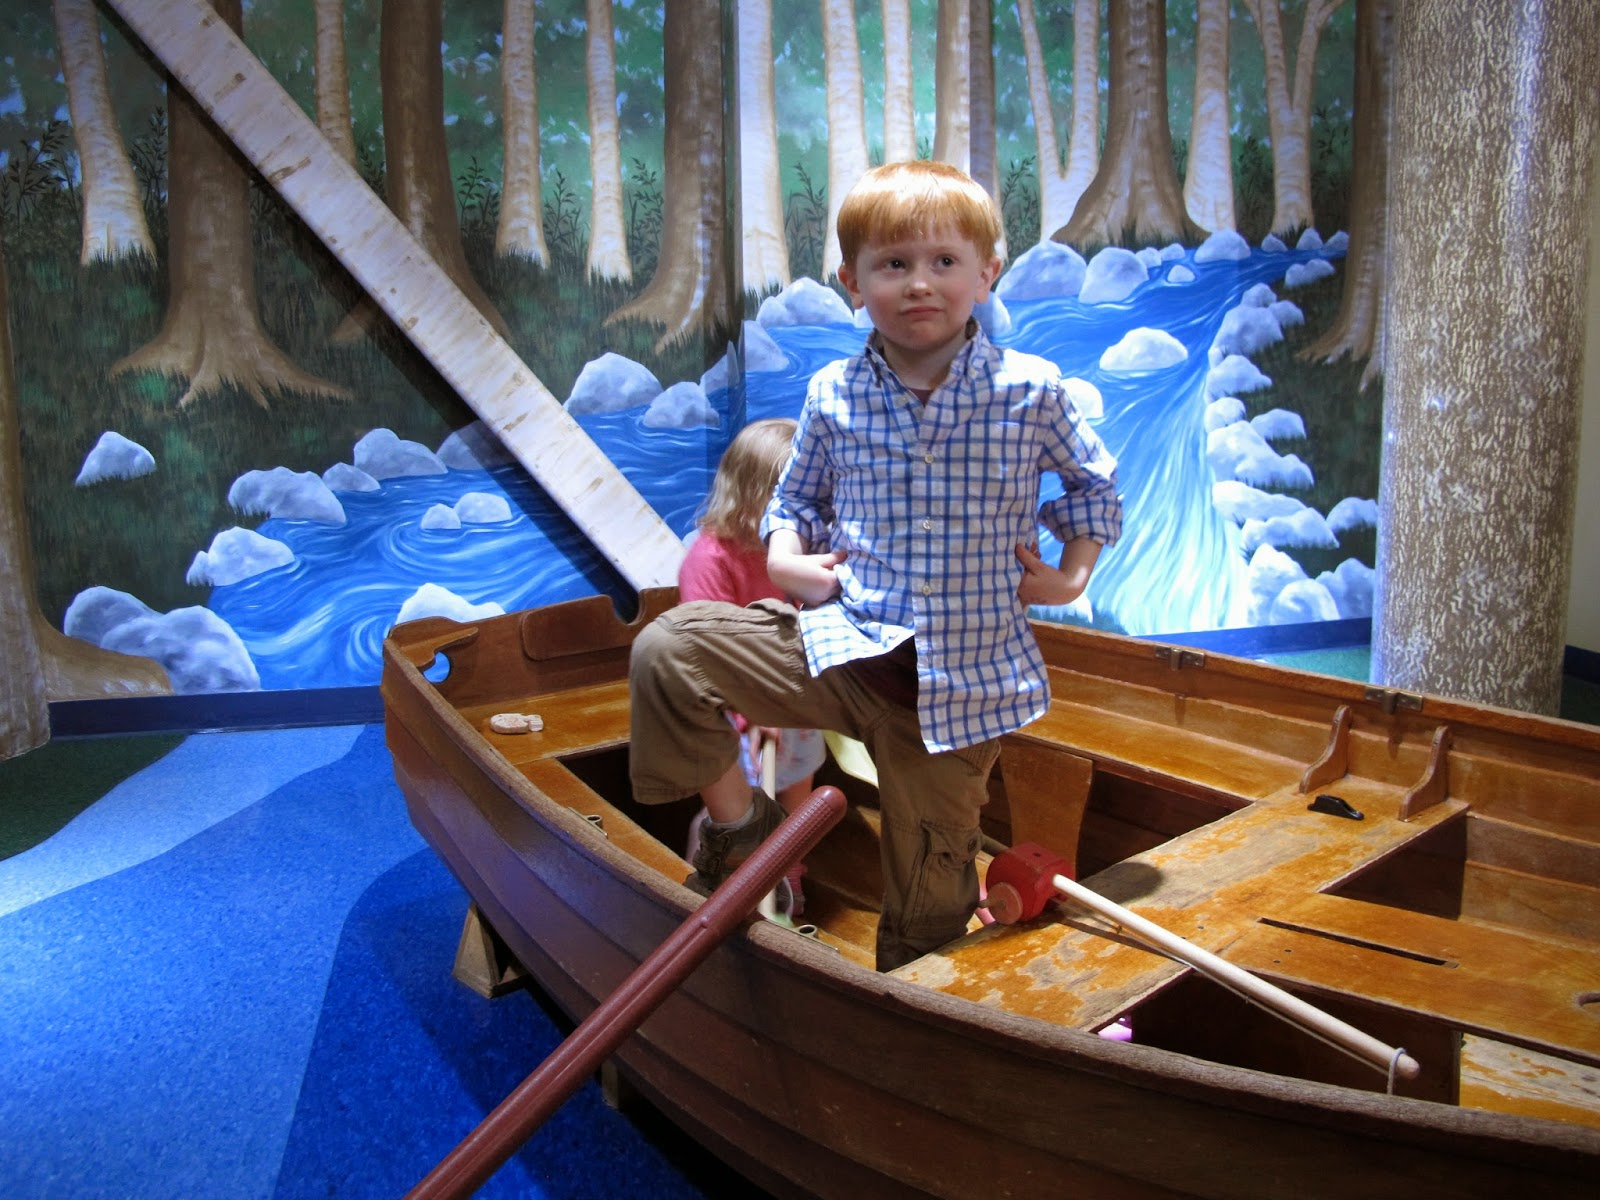 Row Boat in the Enchanted Forest